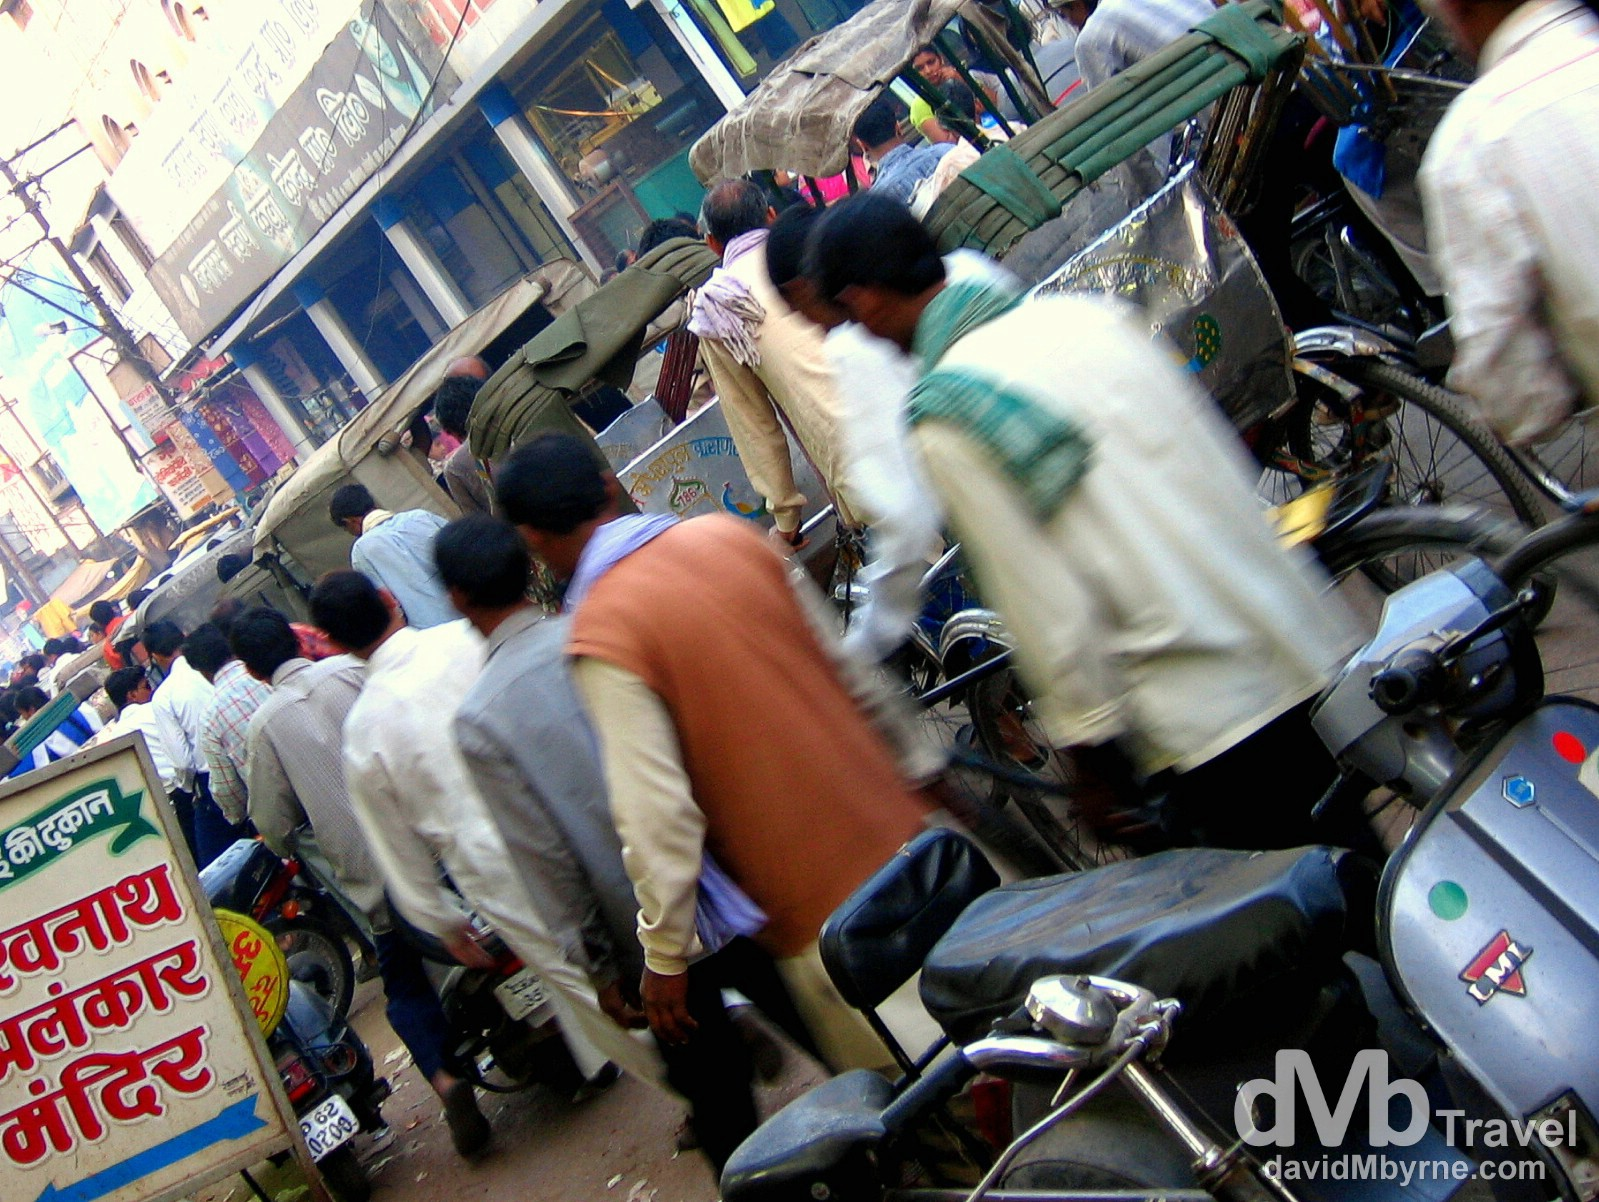 A typical mid-afternoon scene on Madanpura Road, Varanasi, India. March 18th 2008.